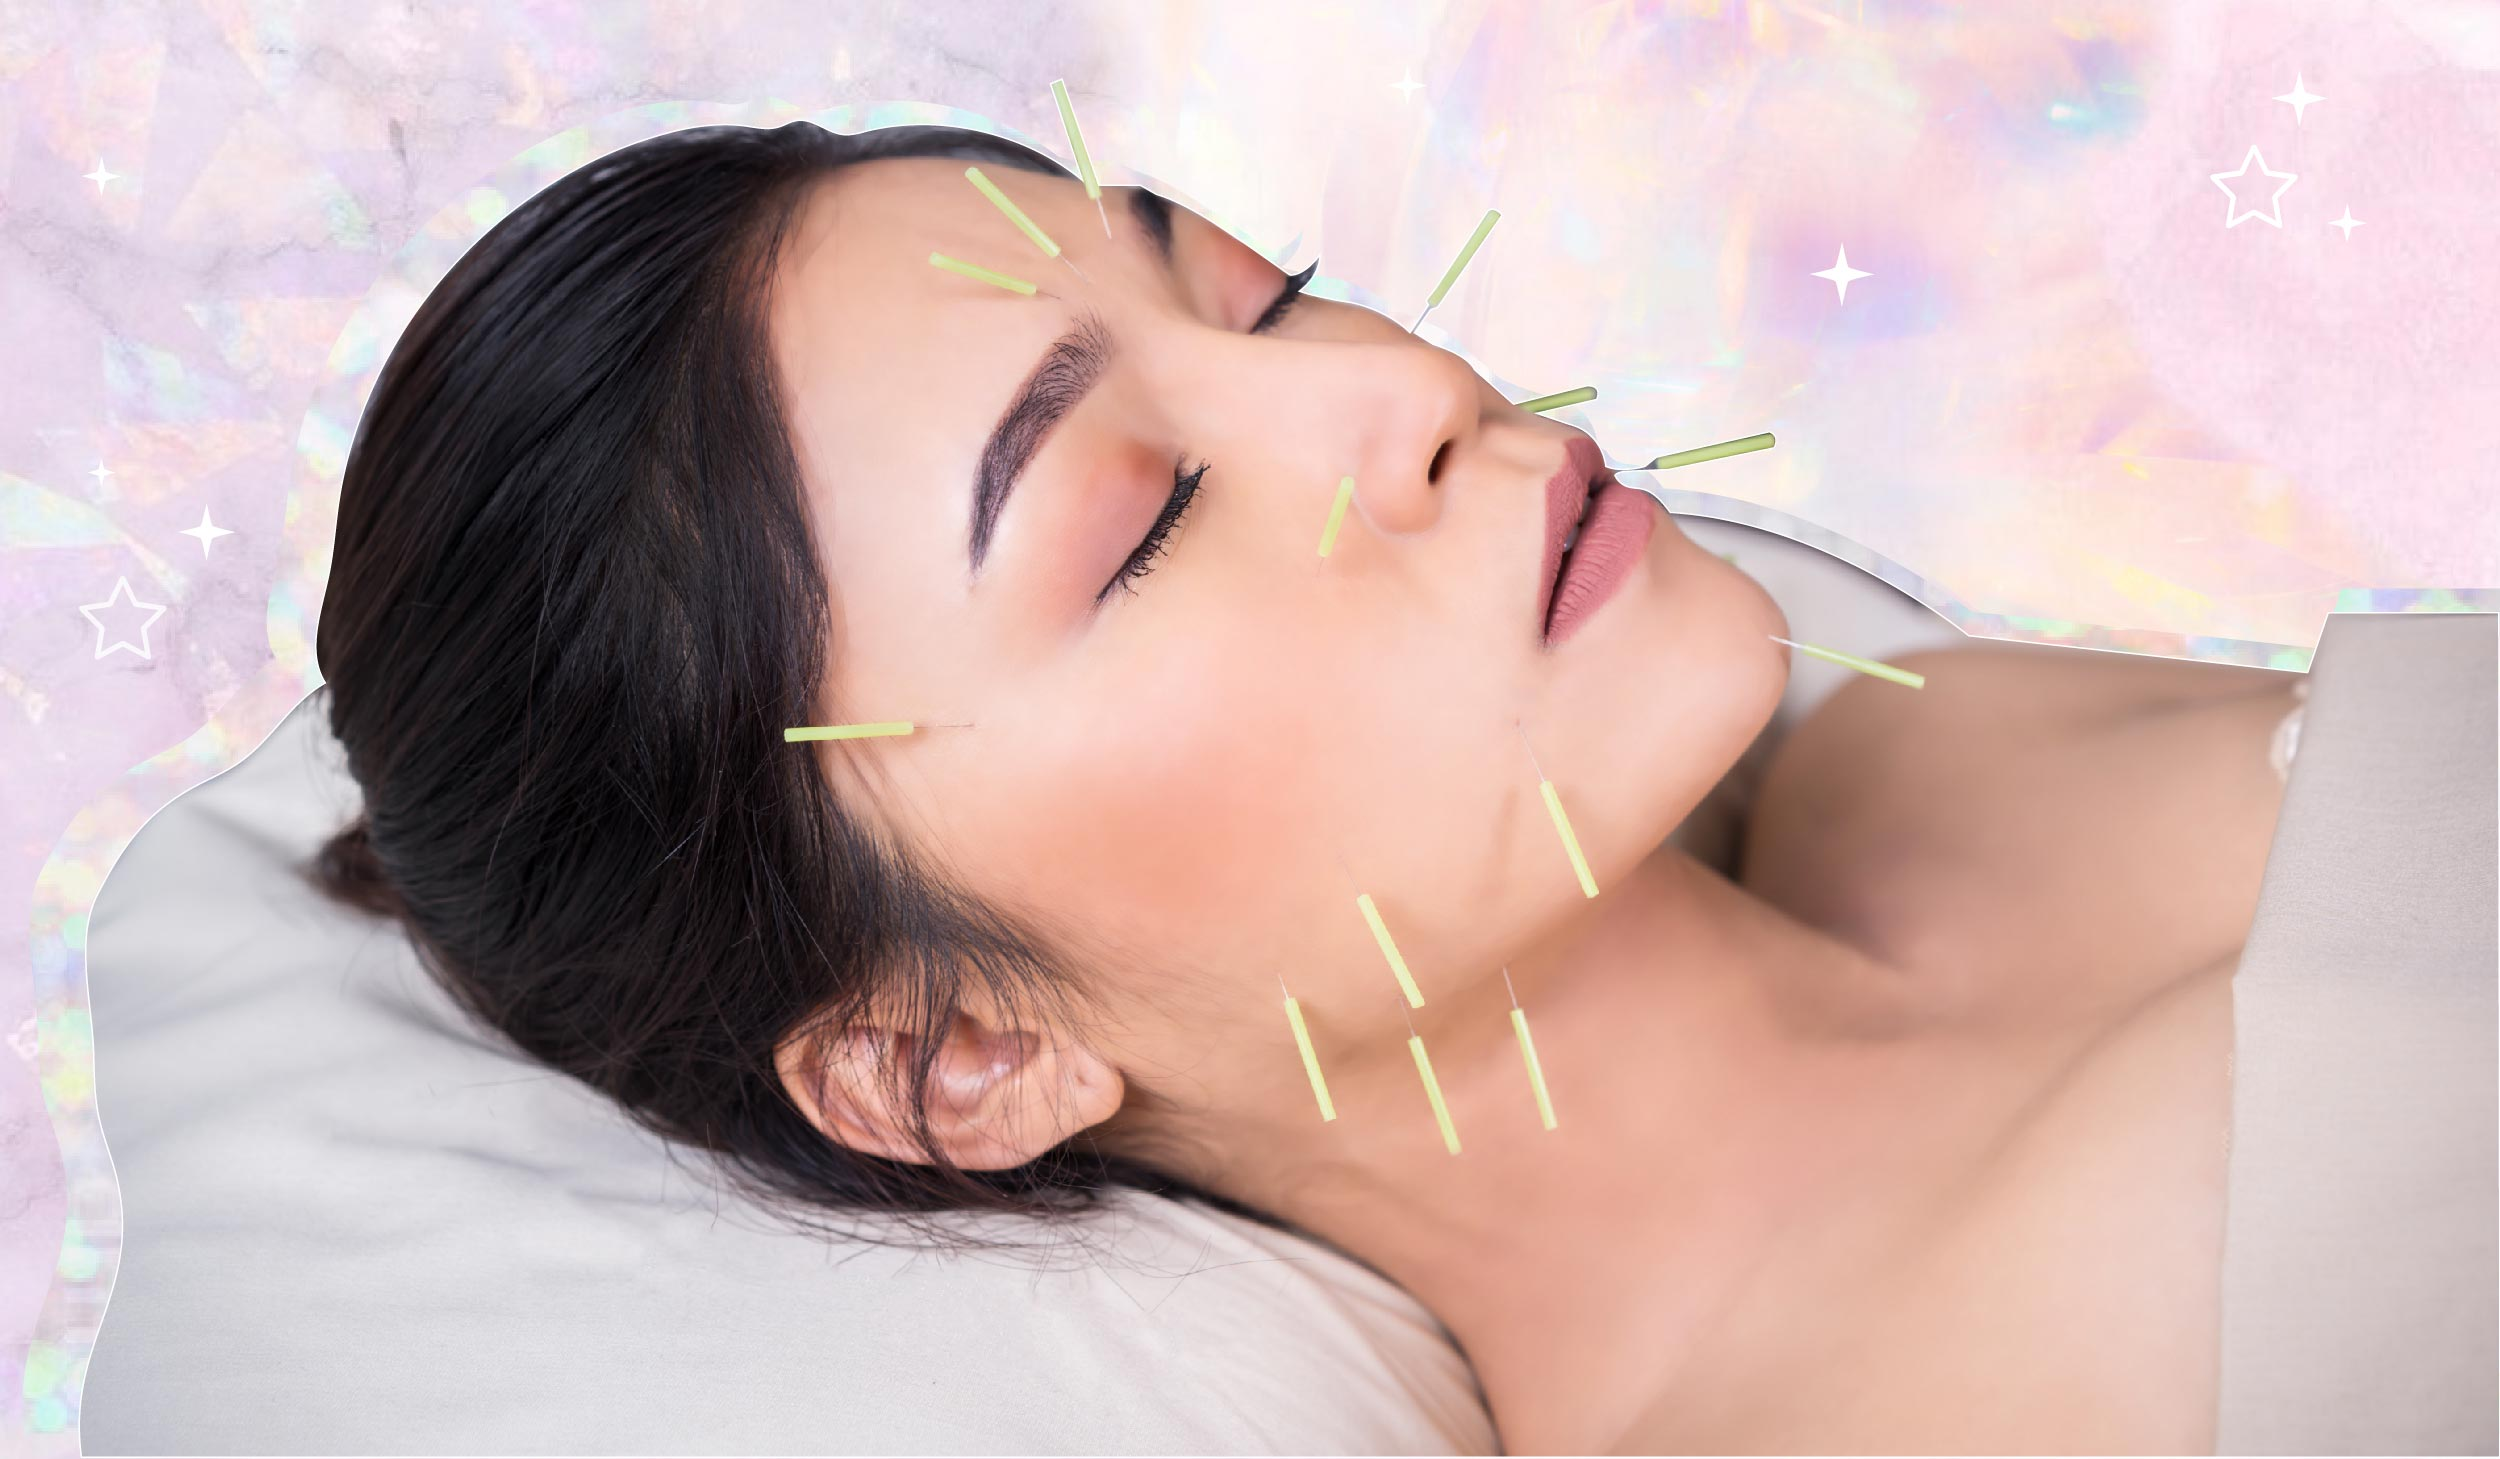 The Beauty & Health Benefits Of Acupuncture According To Experts